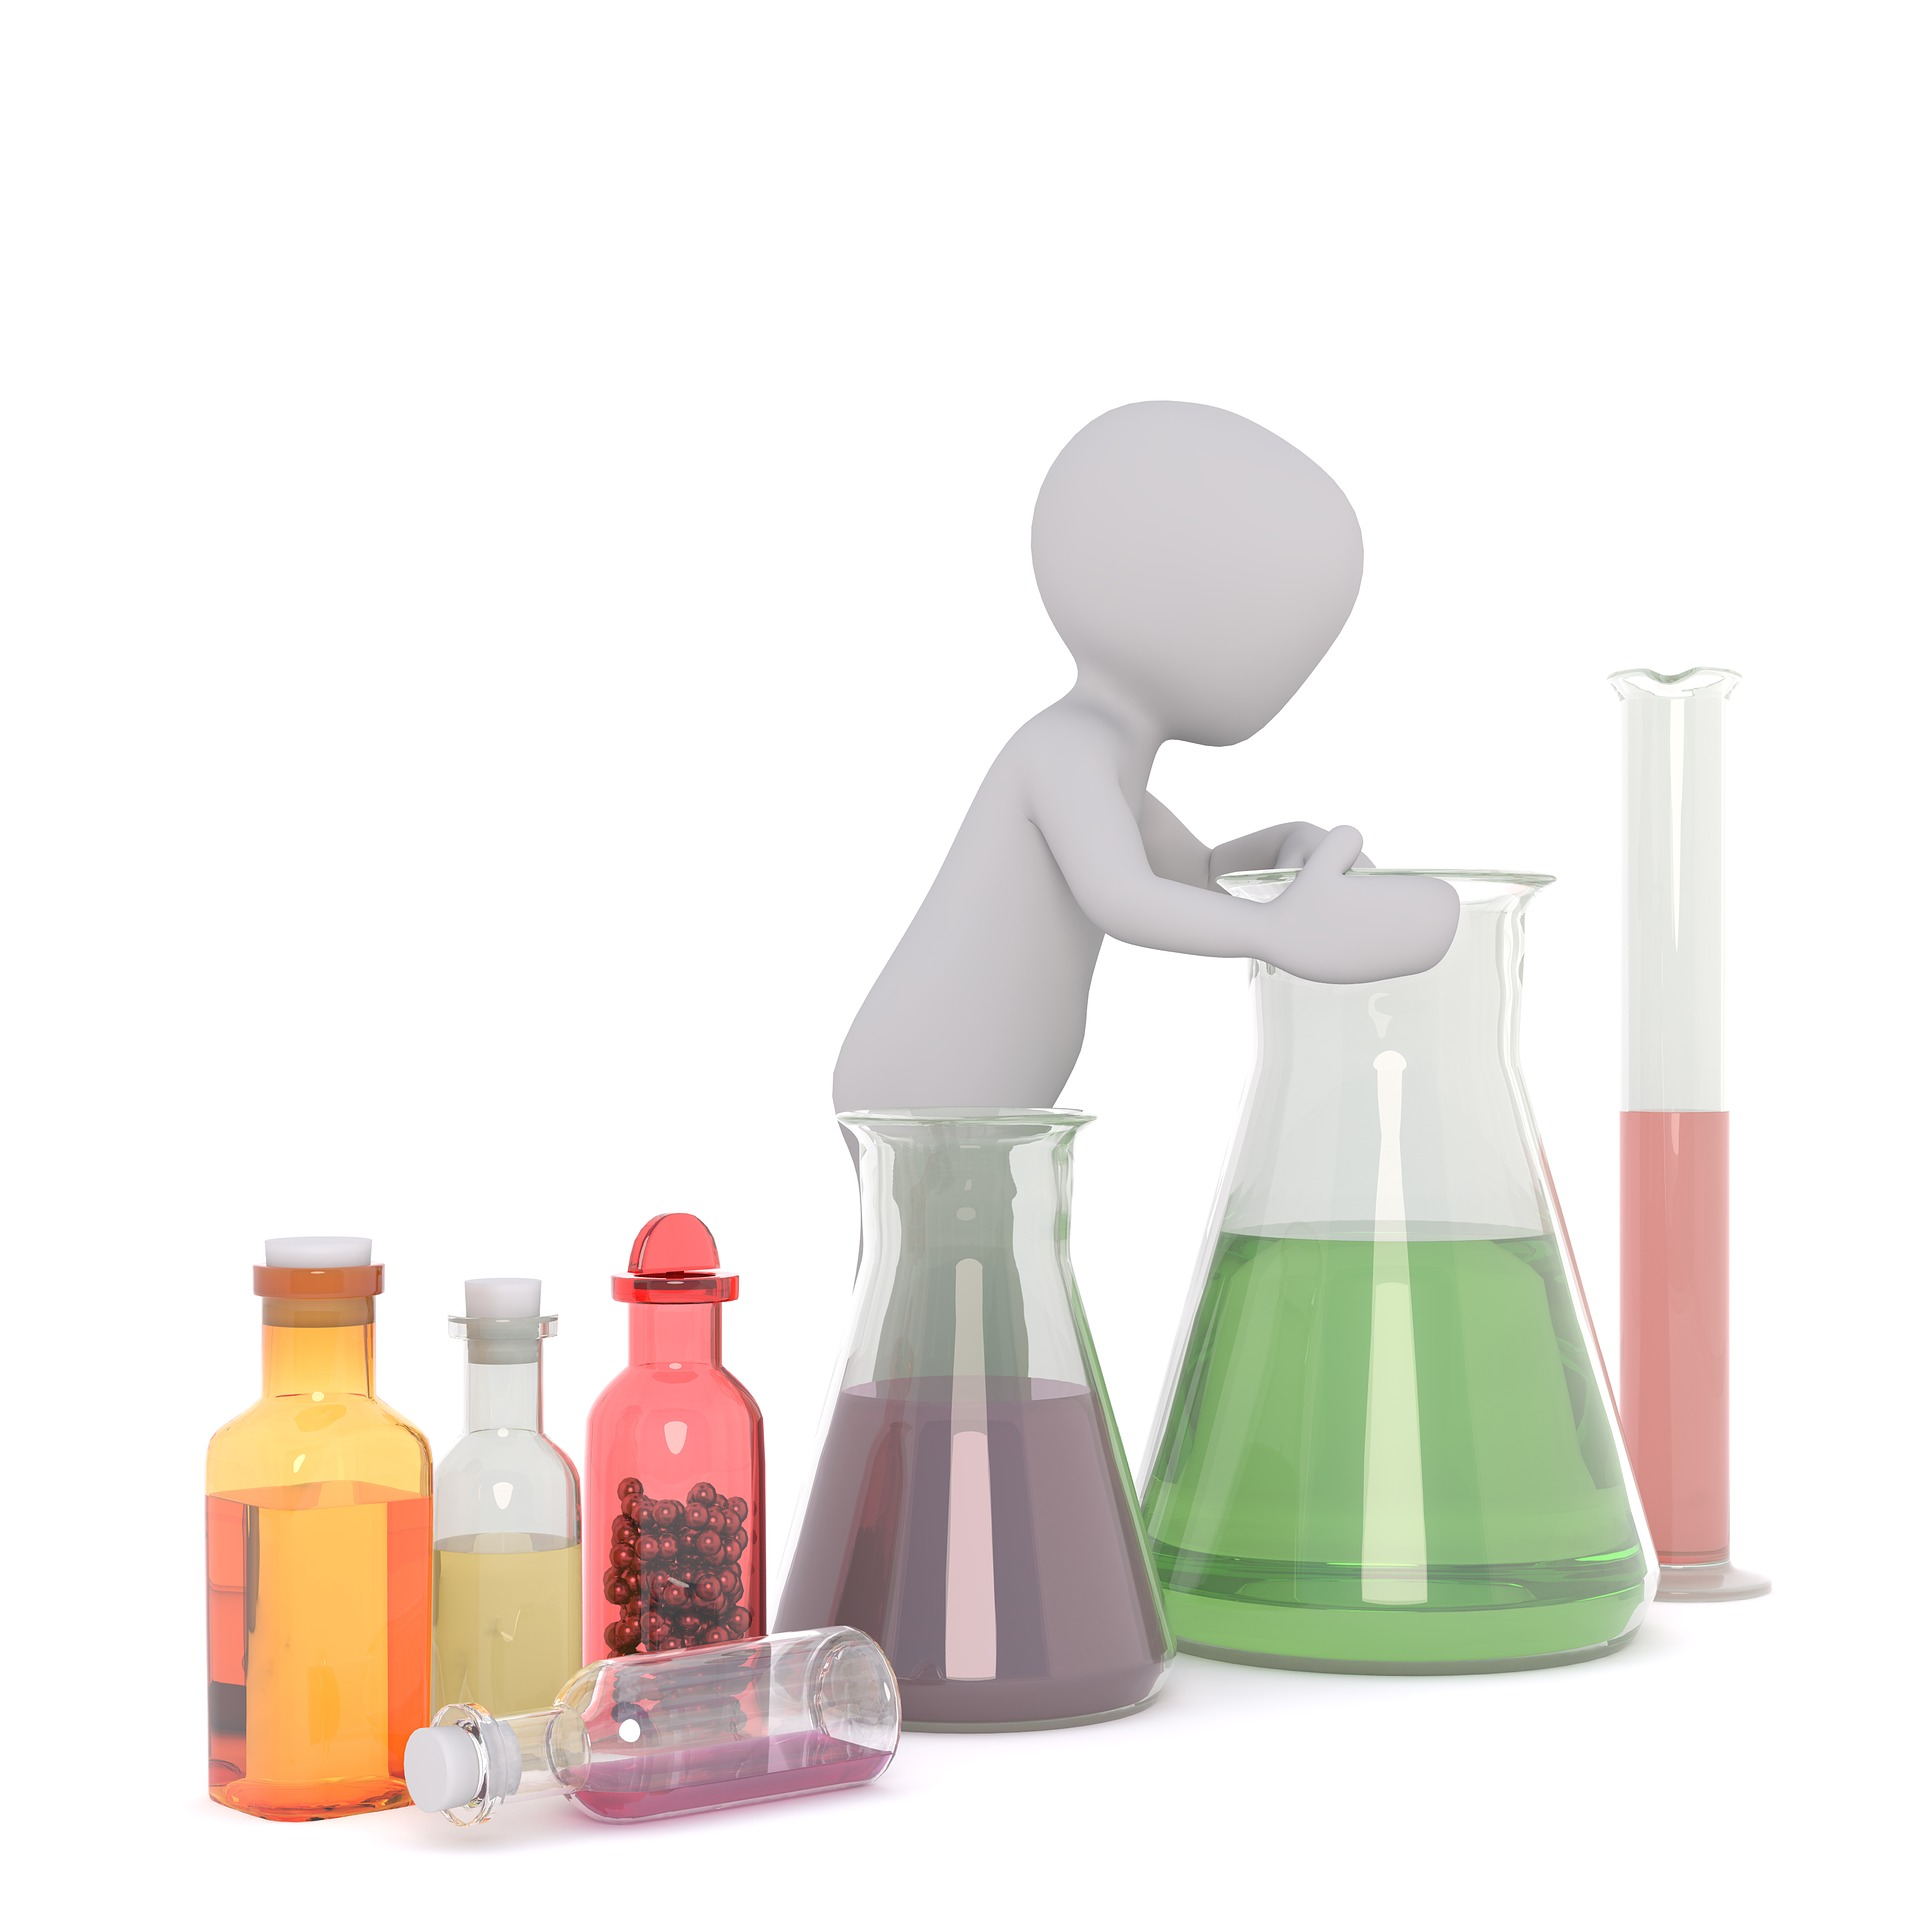 manufacturer of speciality chemicals , API and food processing